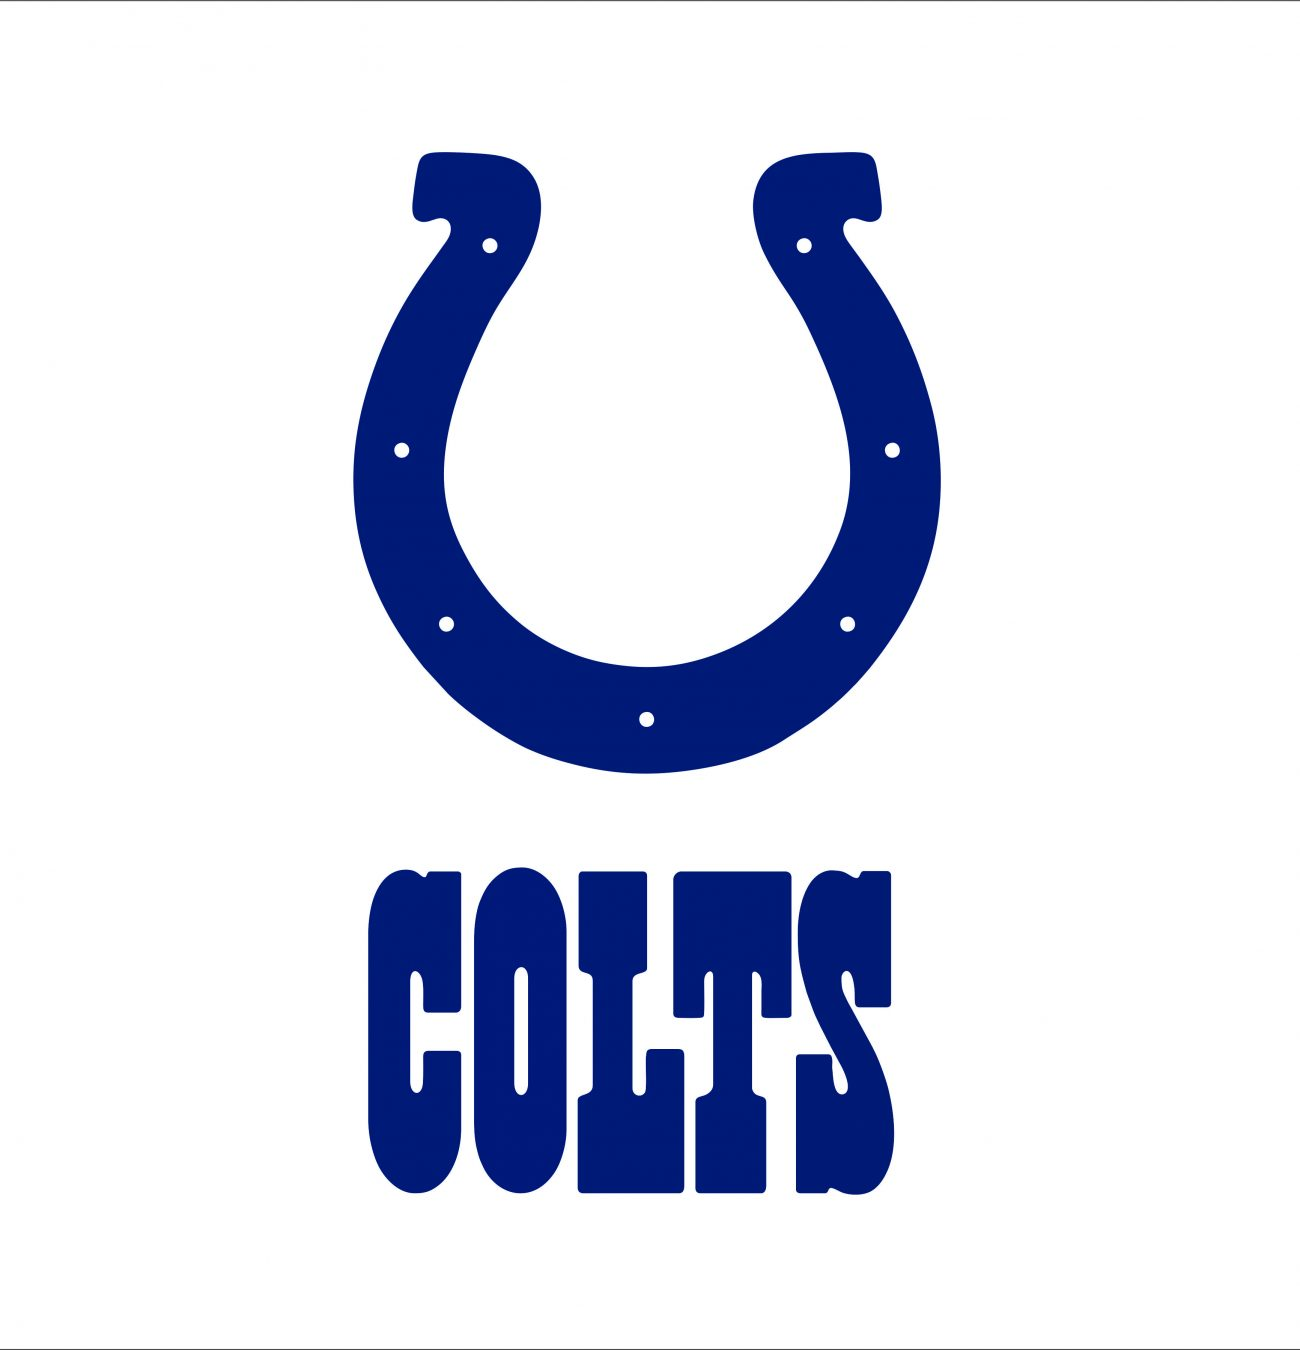 Indianapolis Colts1